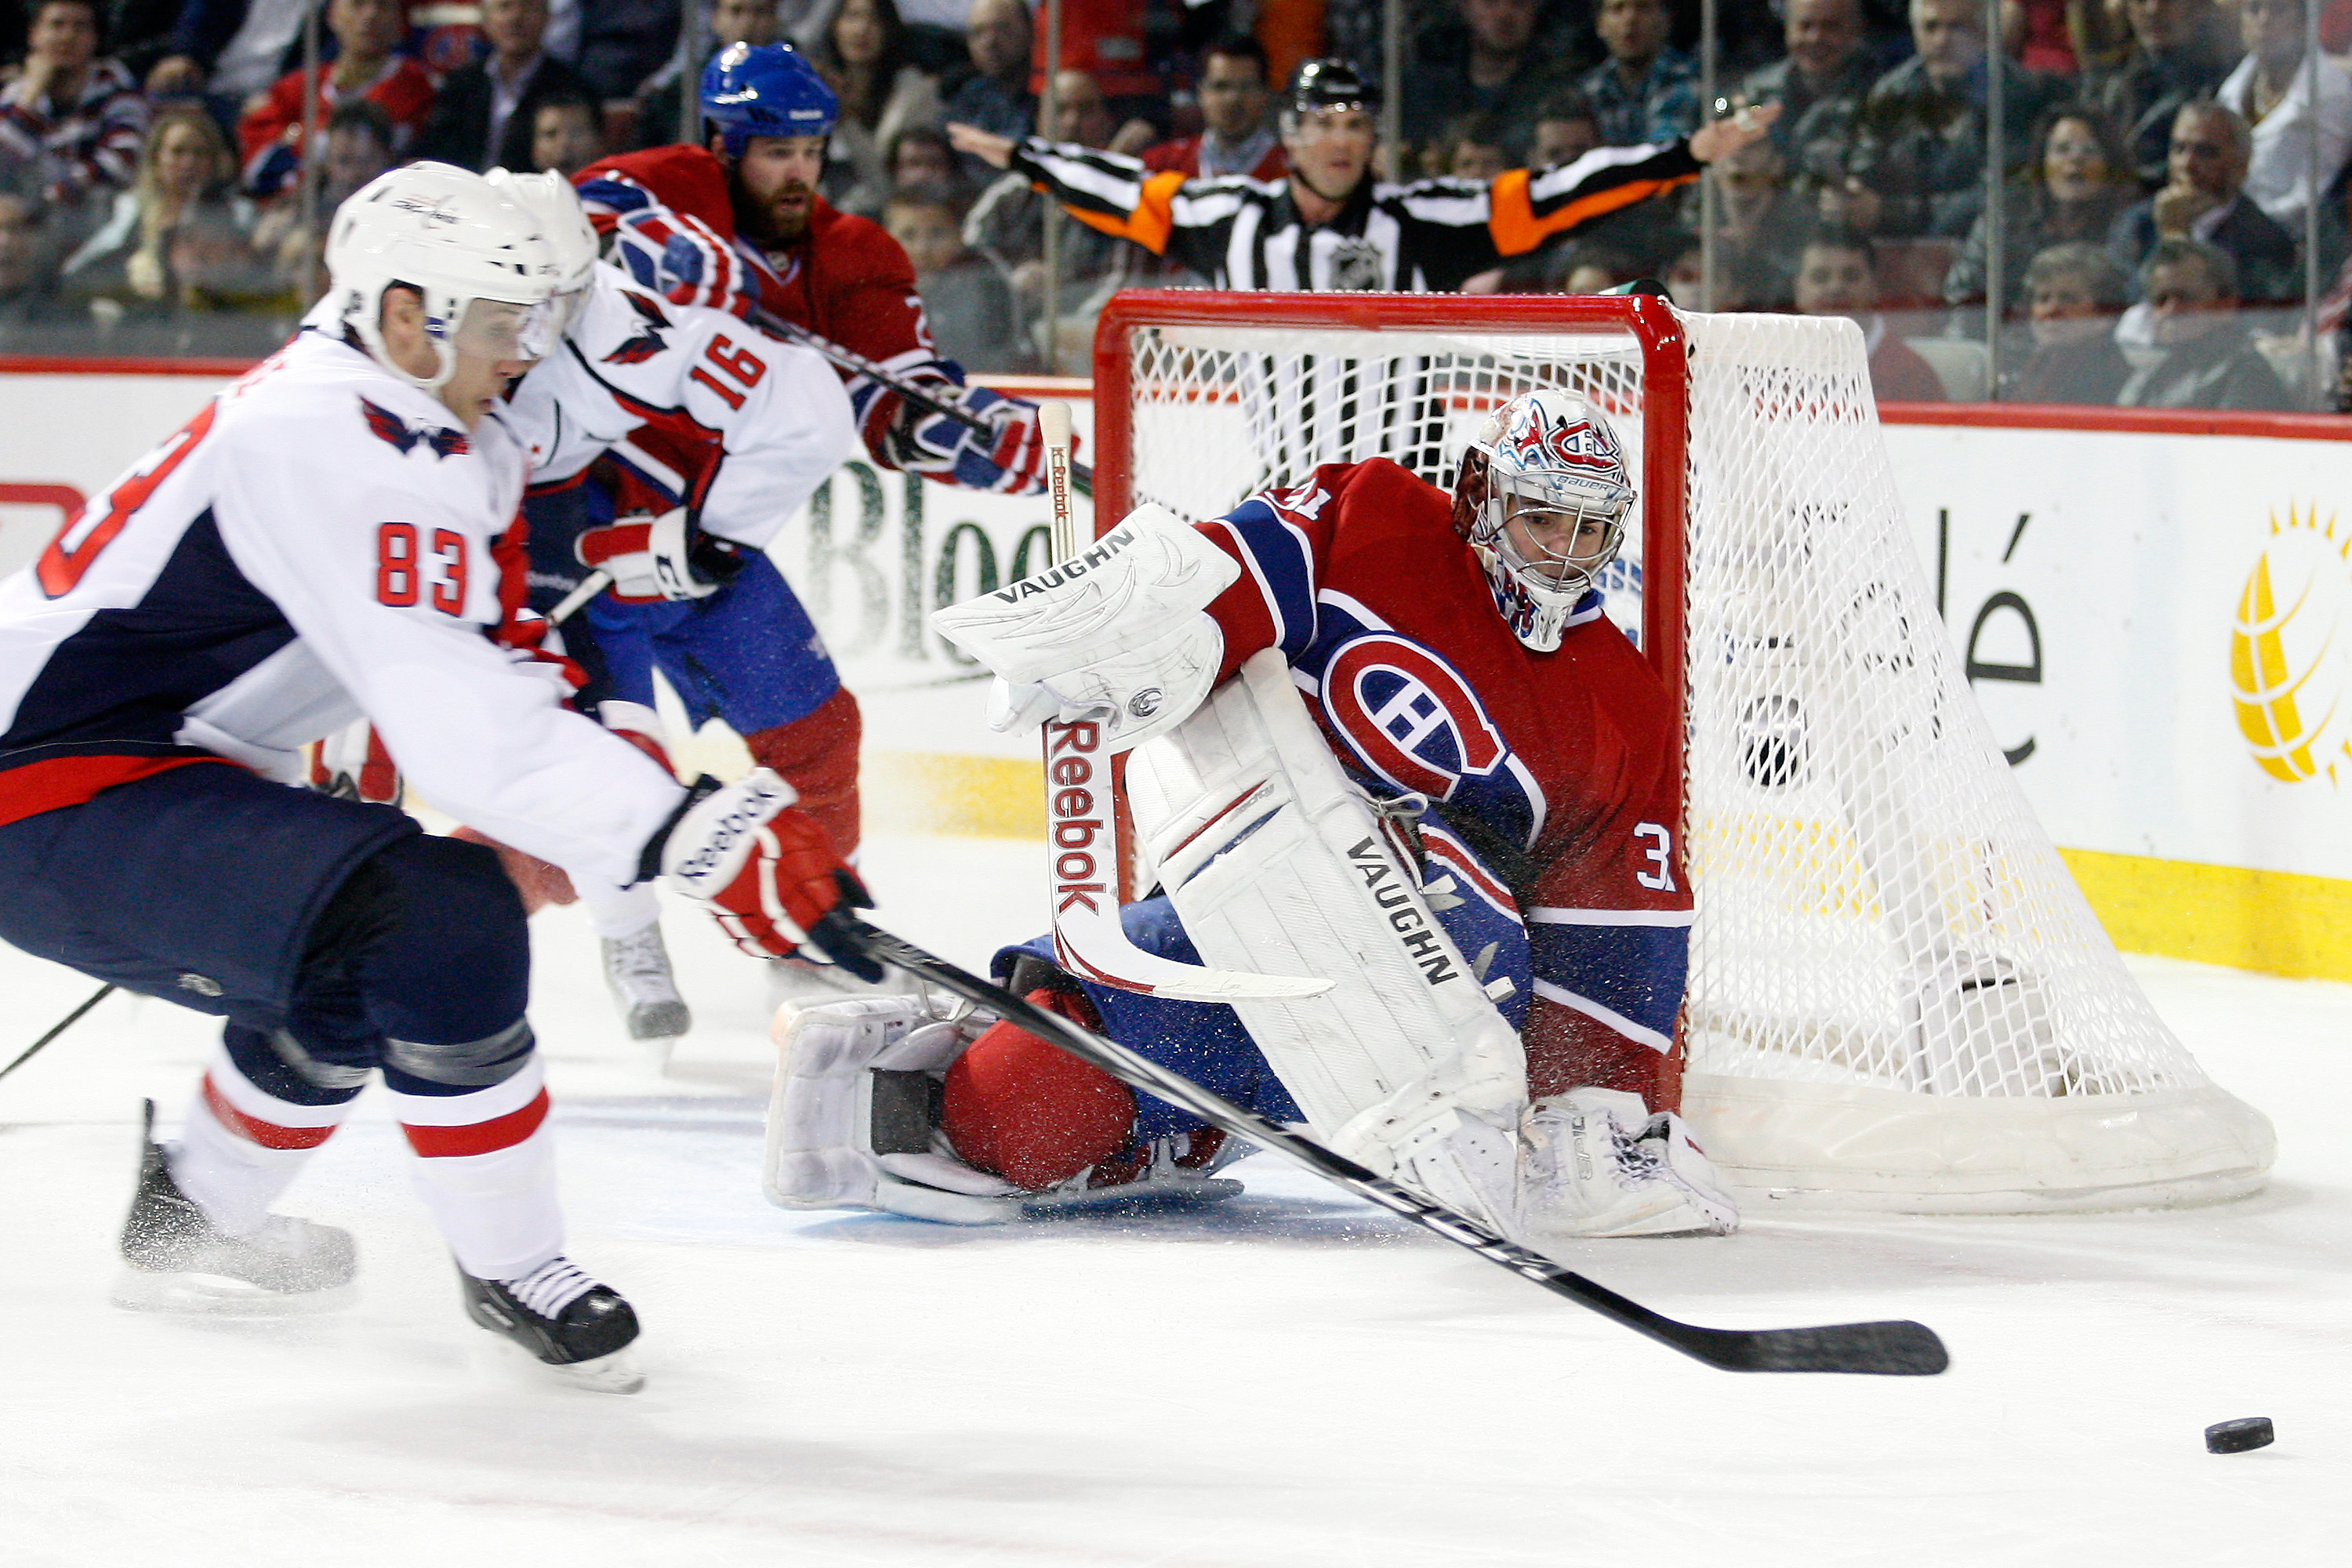 MONTREAL, CANADA - MARCH 15:  Goalie Carey Price #31 of the Montreal Canadiens watches a puck rebound  in front of Jay Beagle #83 of the Washington Capitals during the NHL game at the Bell Centre on March 15, 2011 in Montreal, Quebec, Canada.  The Capital